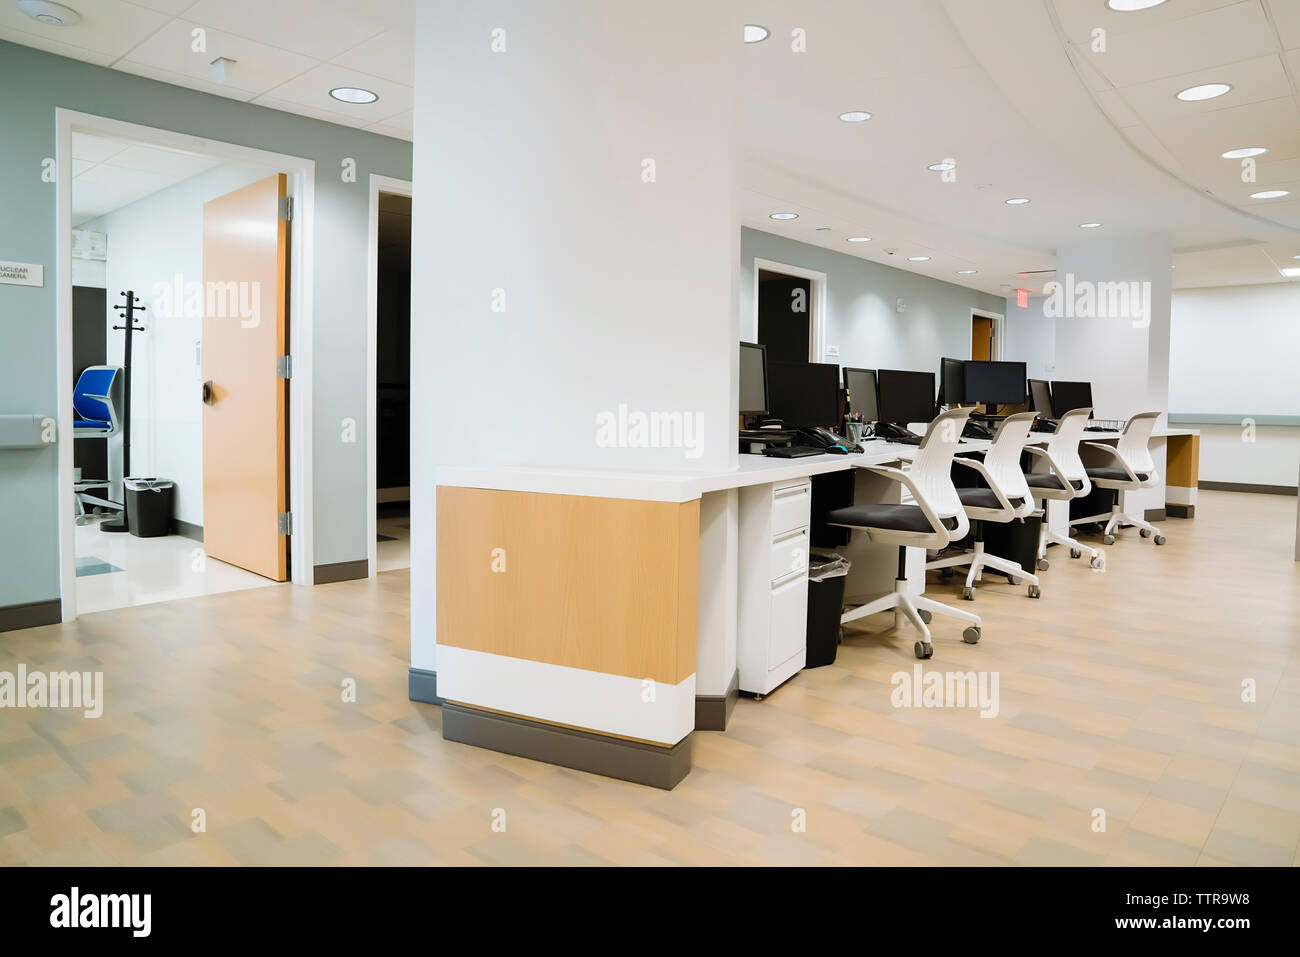 Desktop computers in hospital - Stock Image